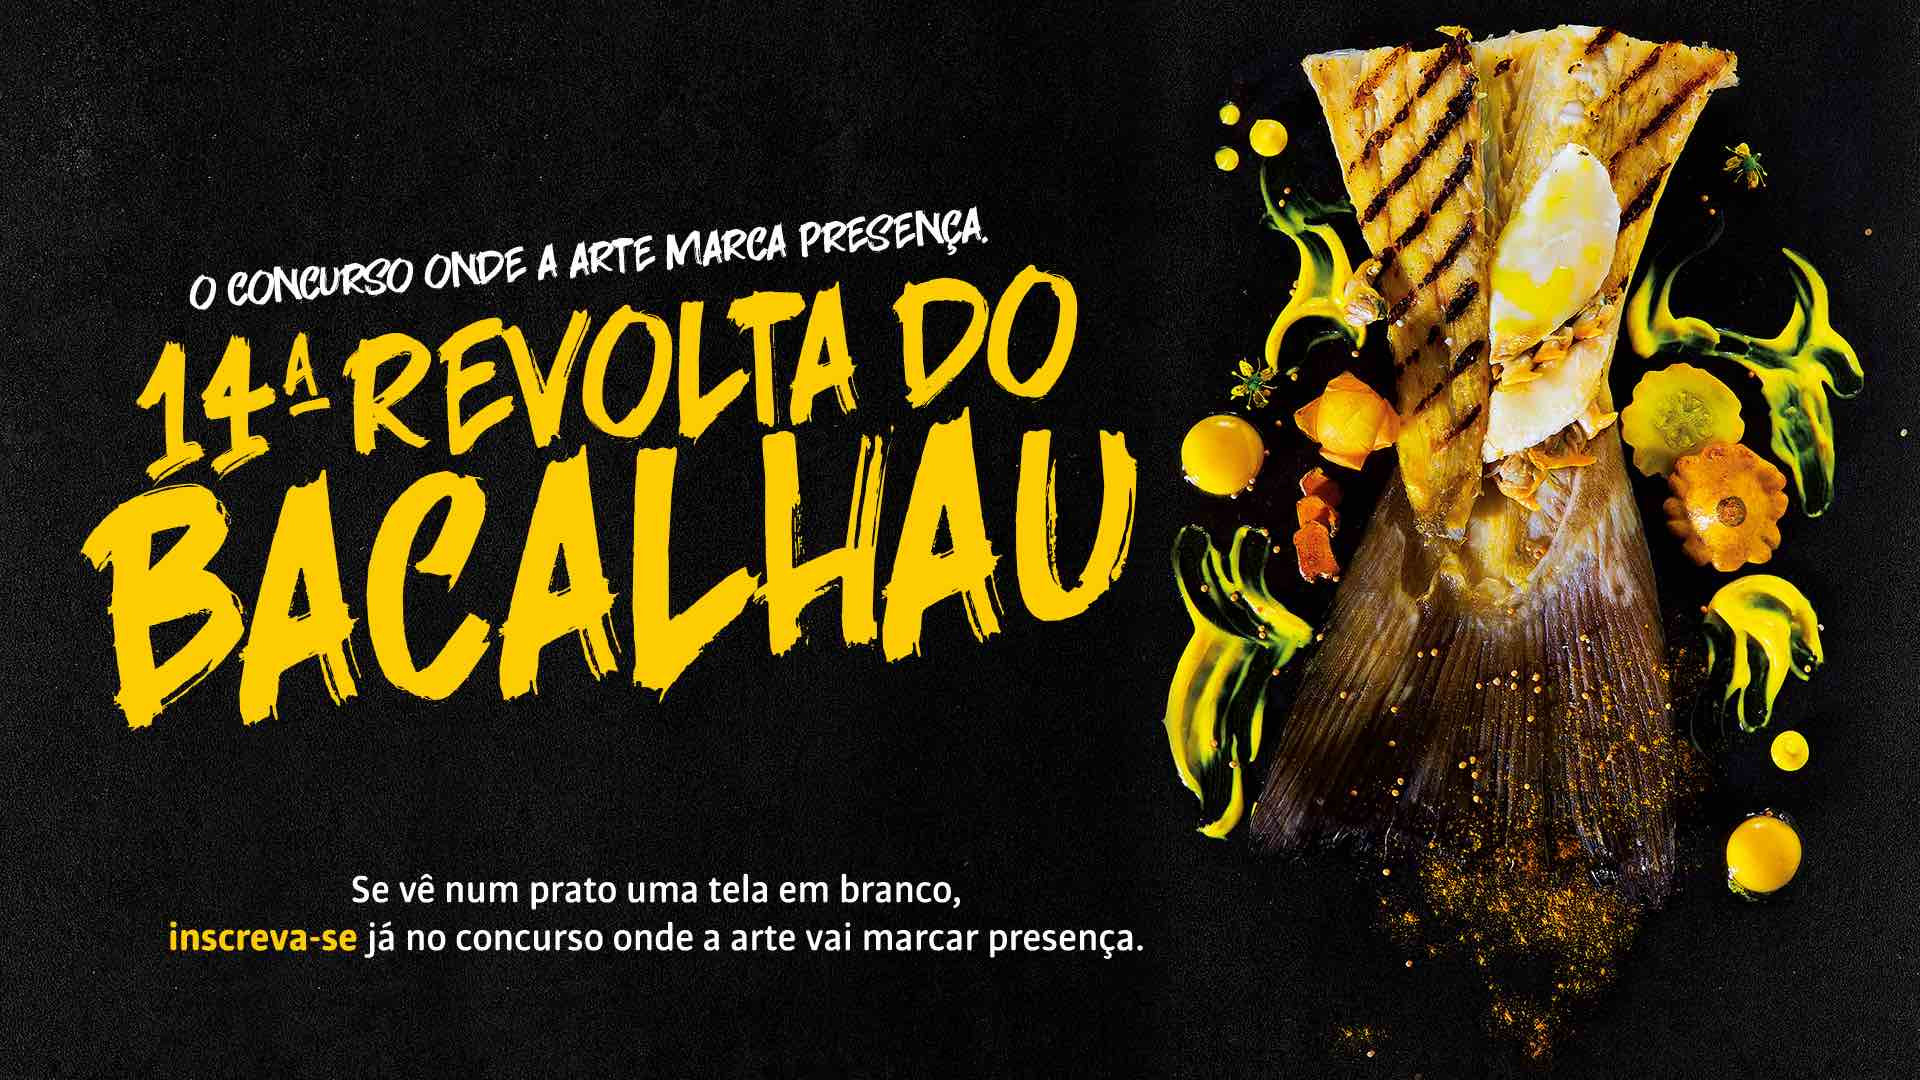 A Revolta do Bacalhau